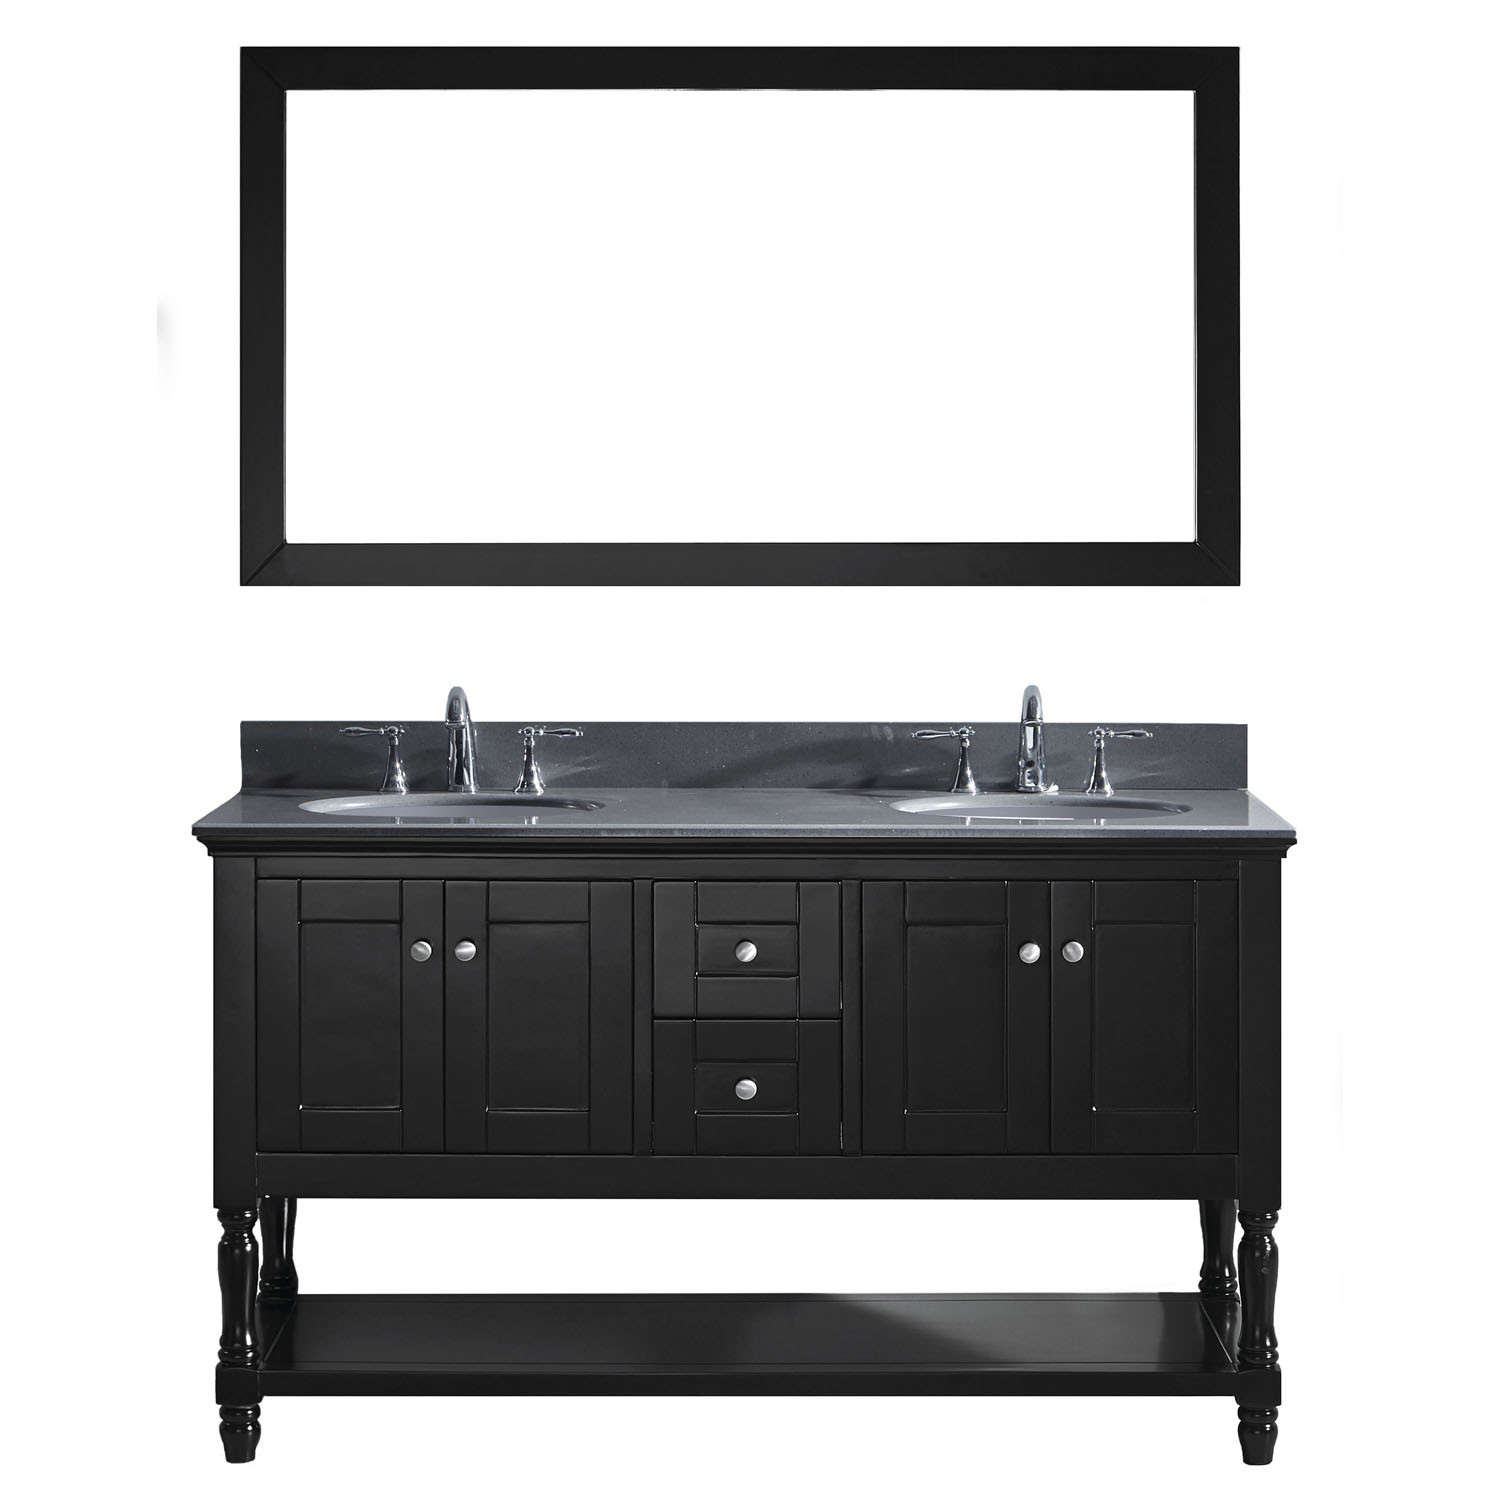 Virtu MD-3160-GQRO-ES-001 Julianna 60 Inch Double Bathroom Vanity Set In Espresso